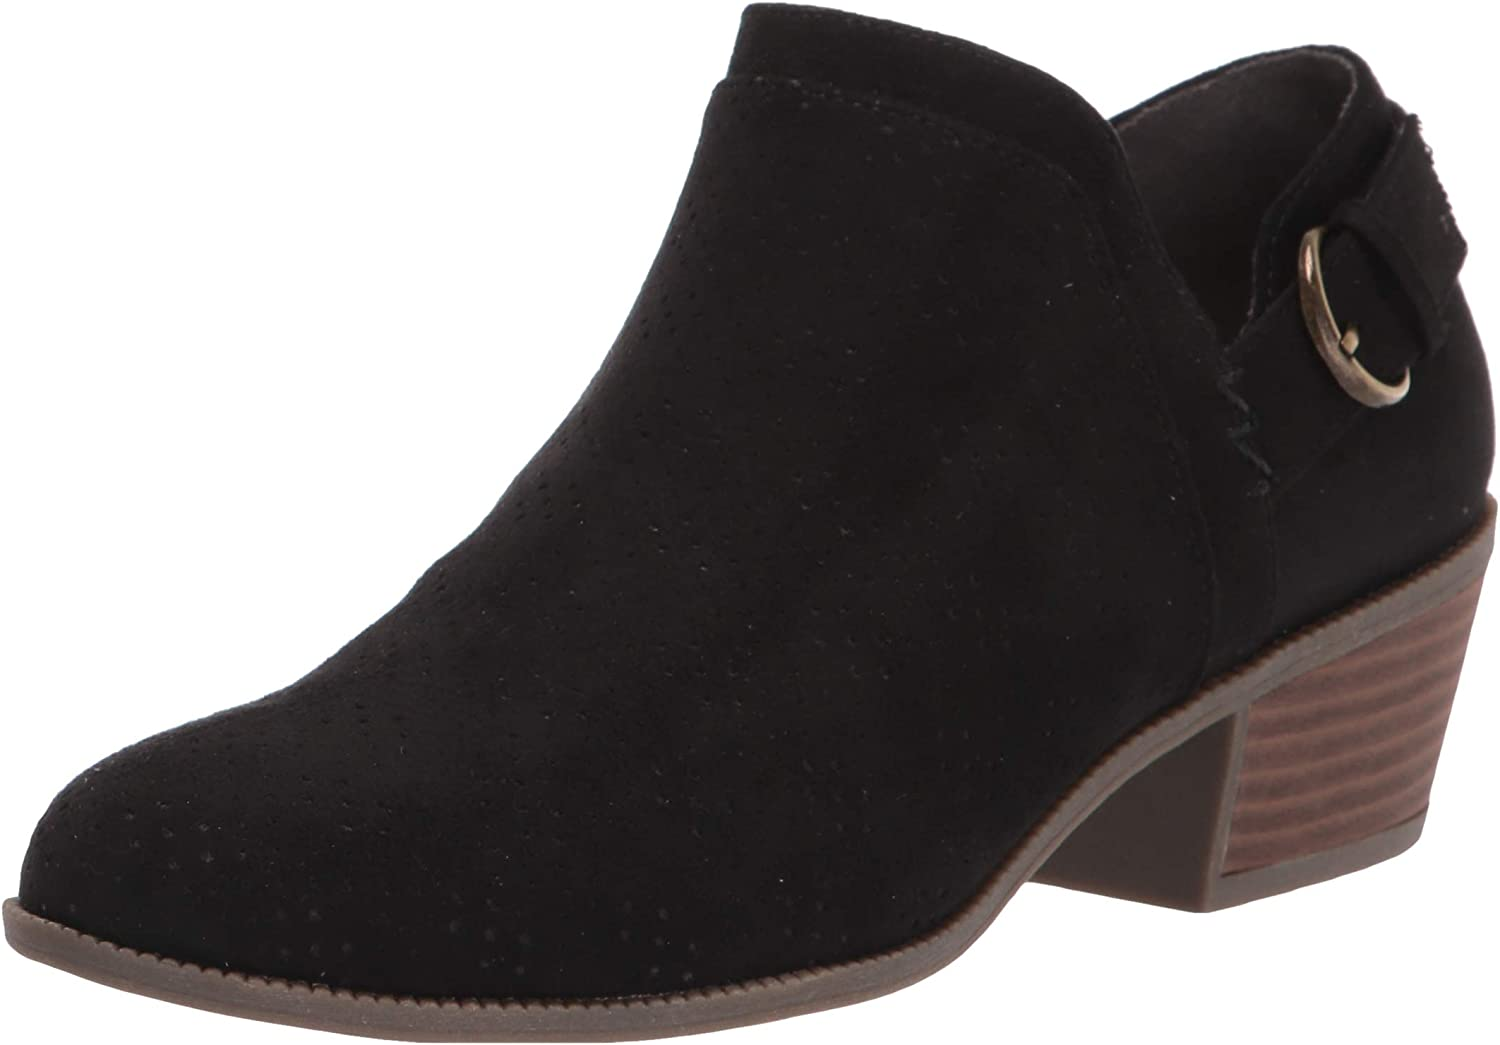 Dr. Scholl's Shoes Super beauty product restock quality top Women's Clearance SALE! Limited time! Boot BFF Ankle